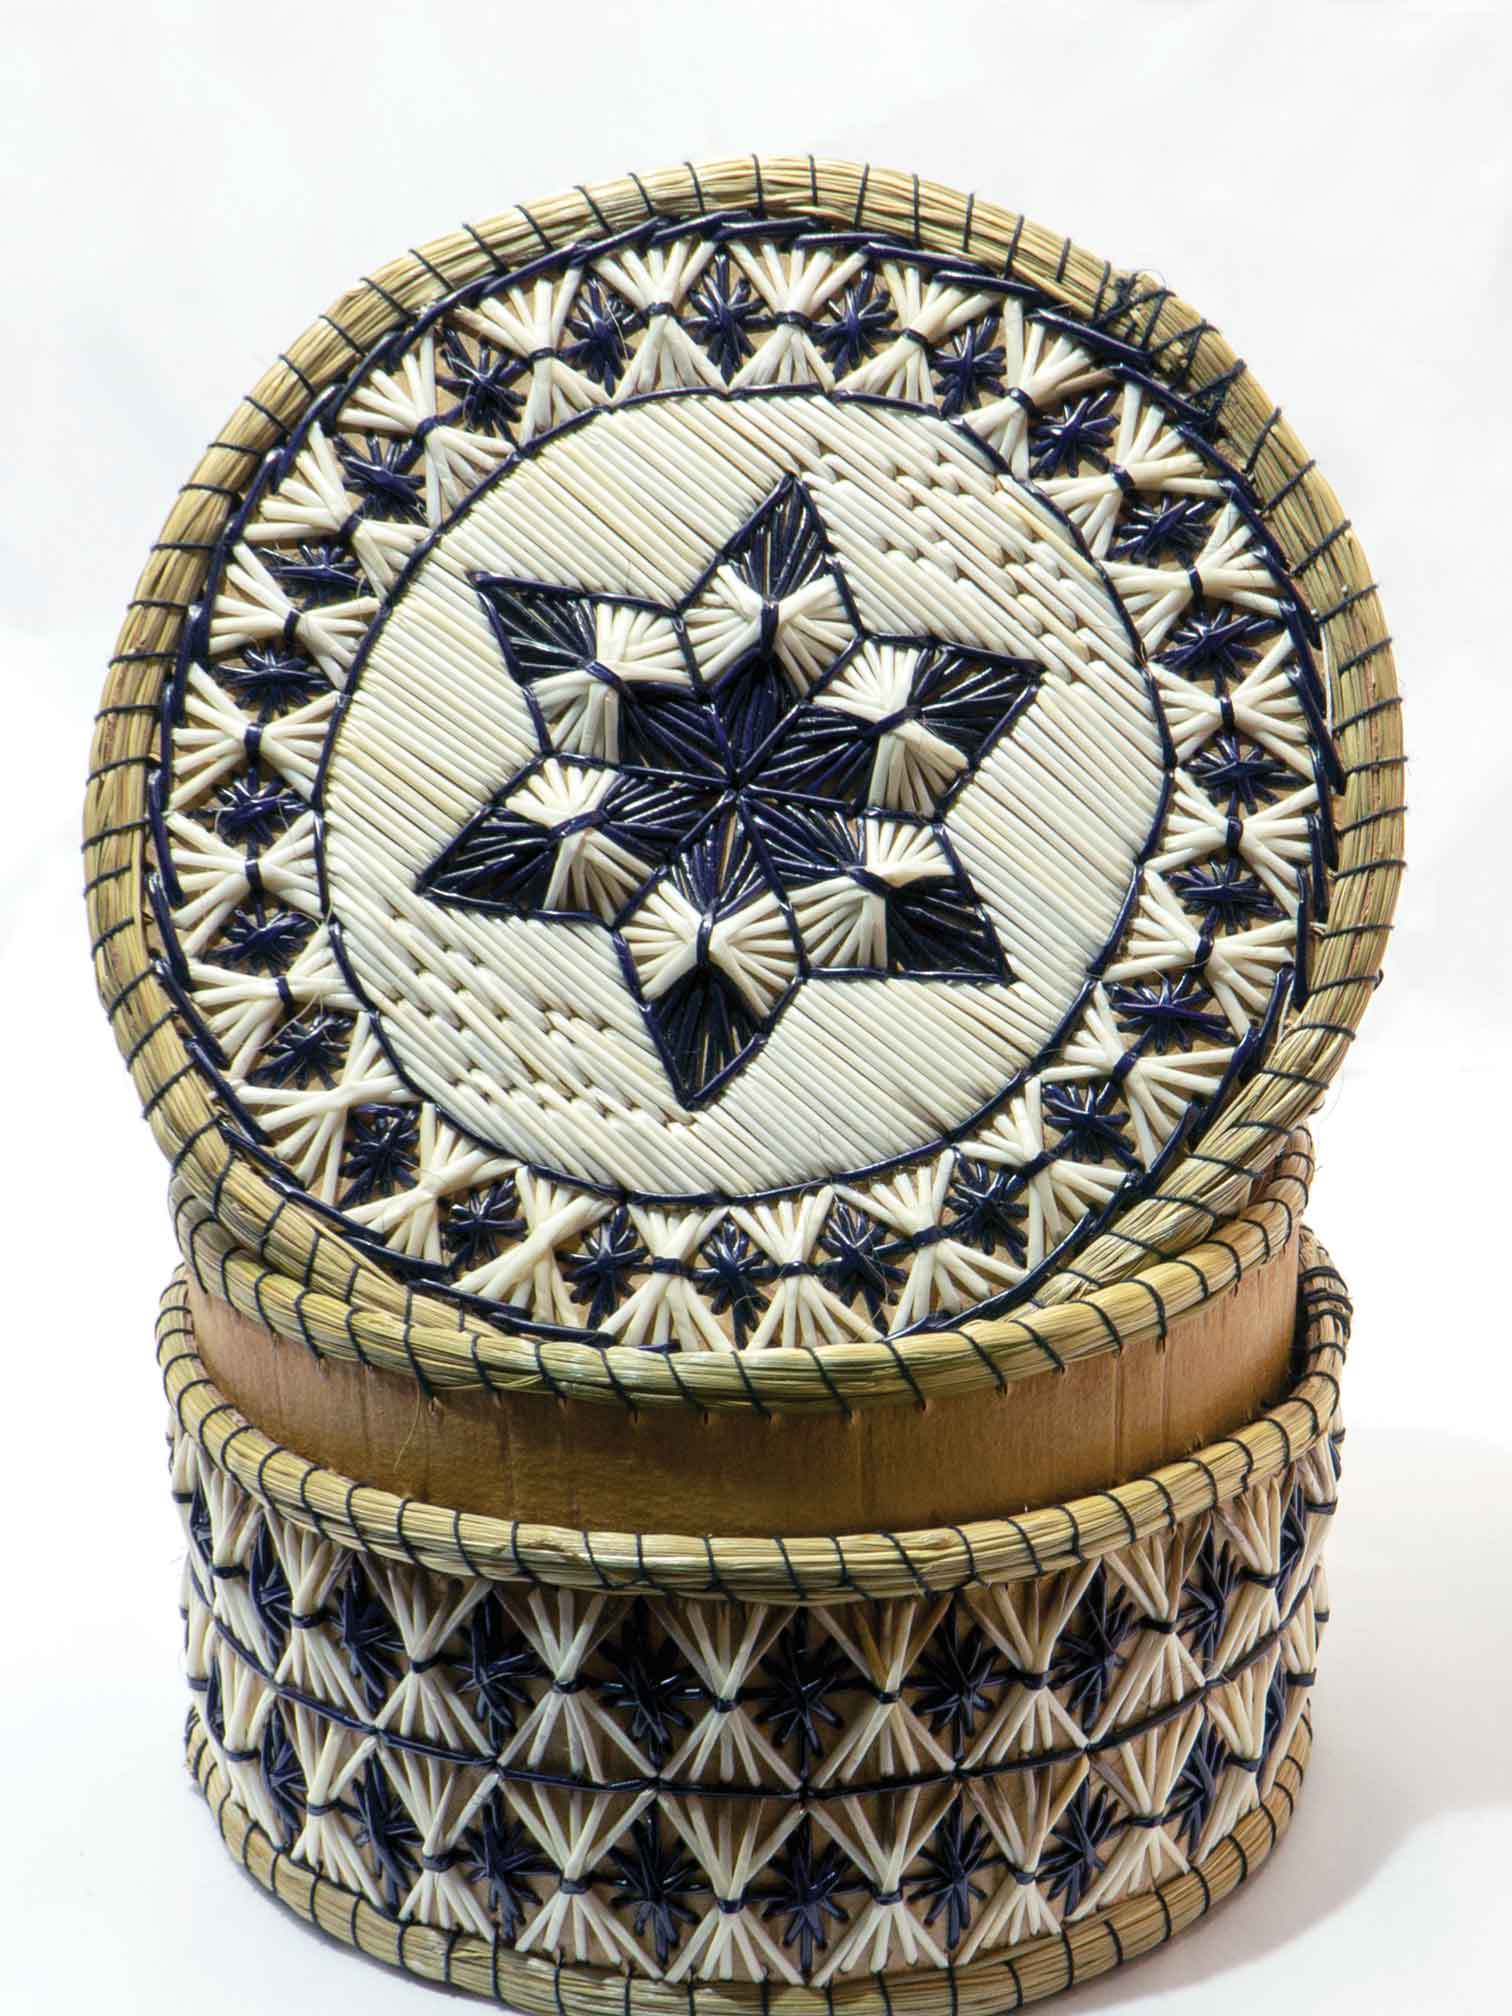 Canadian Rockies Indigenous art basket from Our Native Land